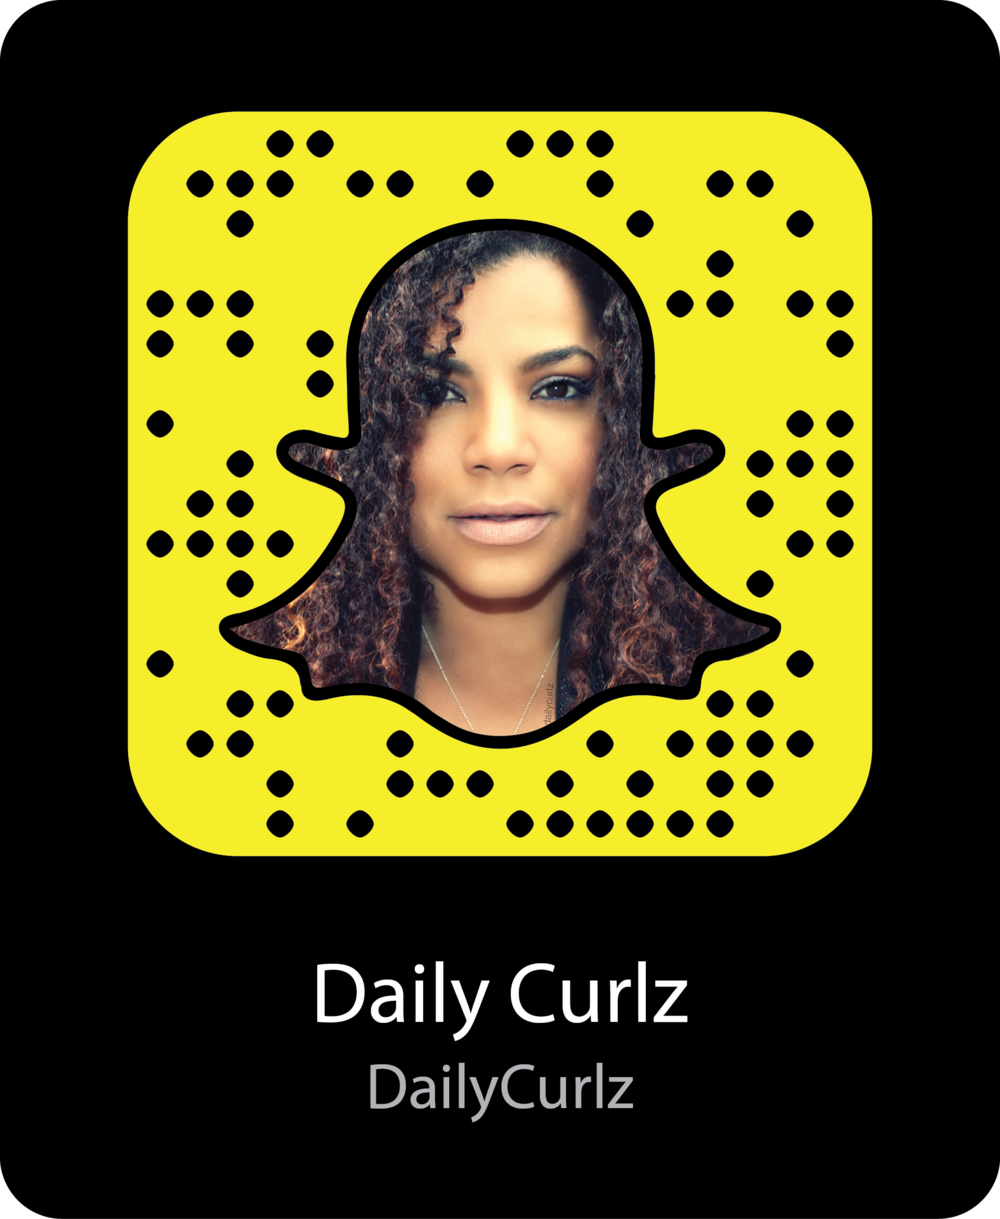 DailyCurlz-Beauty-Bloggers-snapchat-snapcode.png